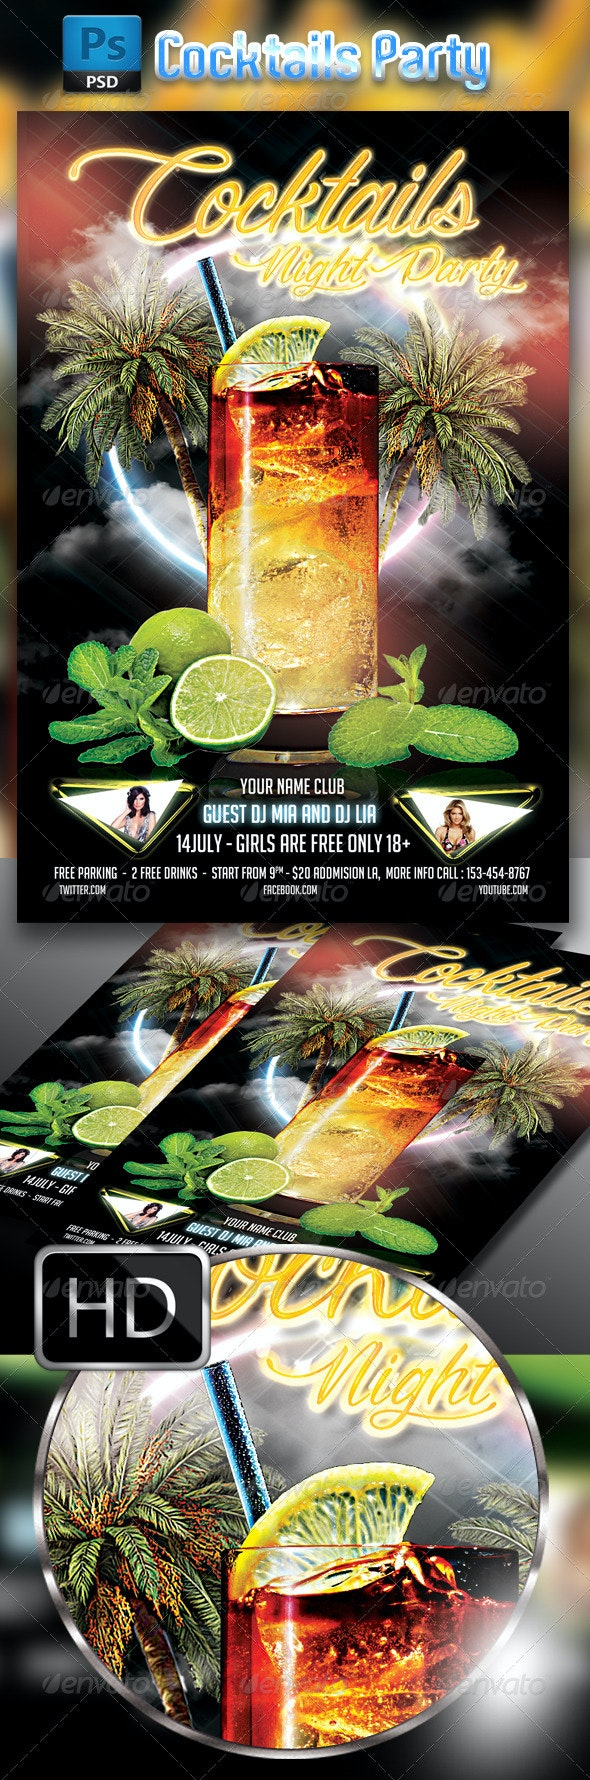 Cocktail Party Flyer Template #3 - Clubs & Parties Events